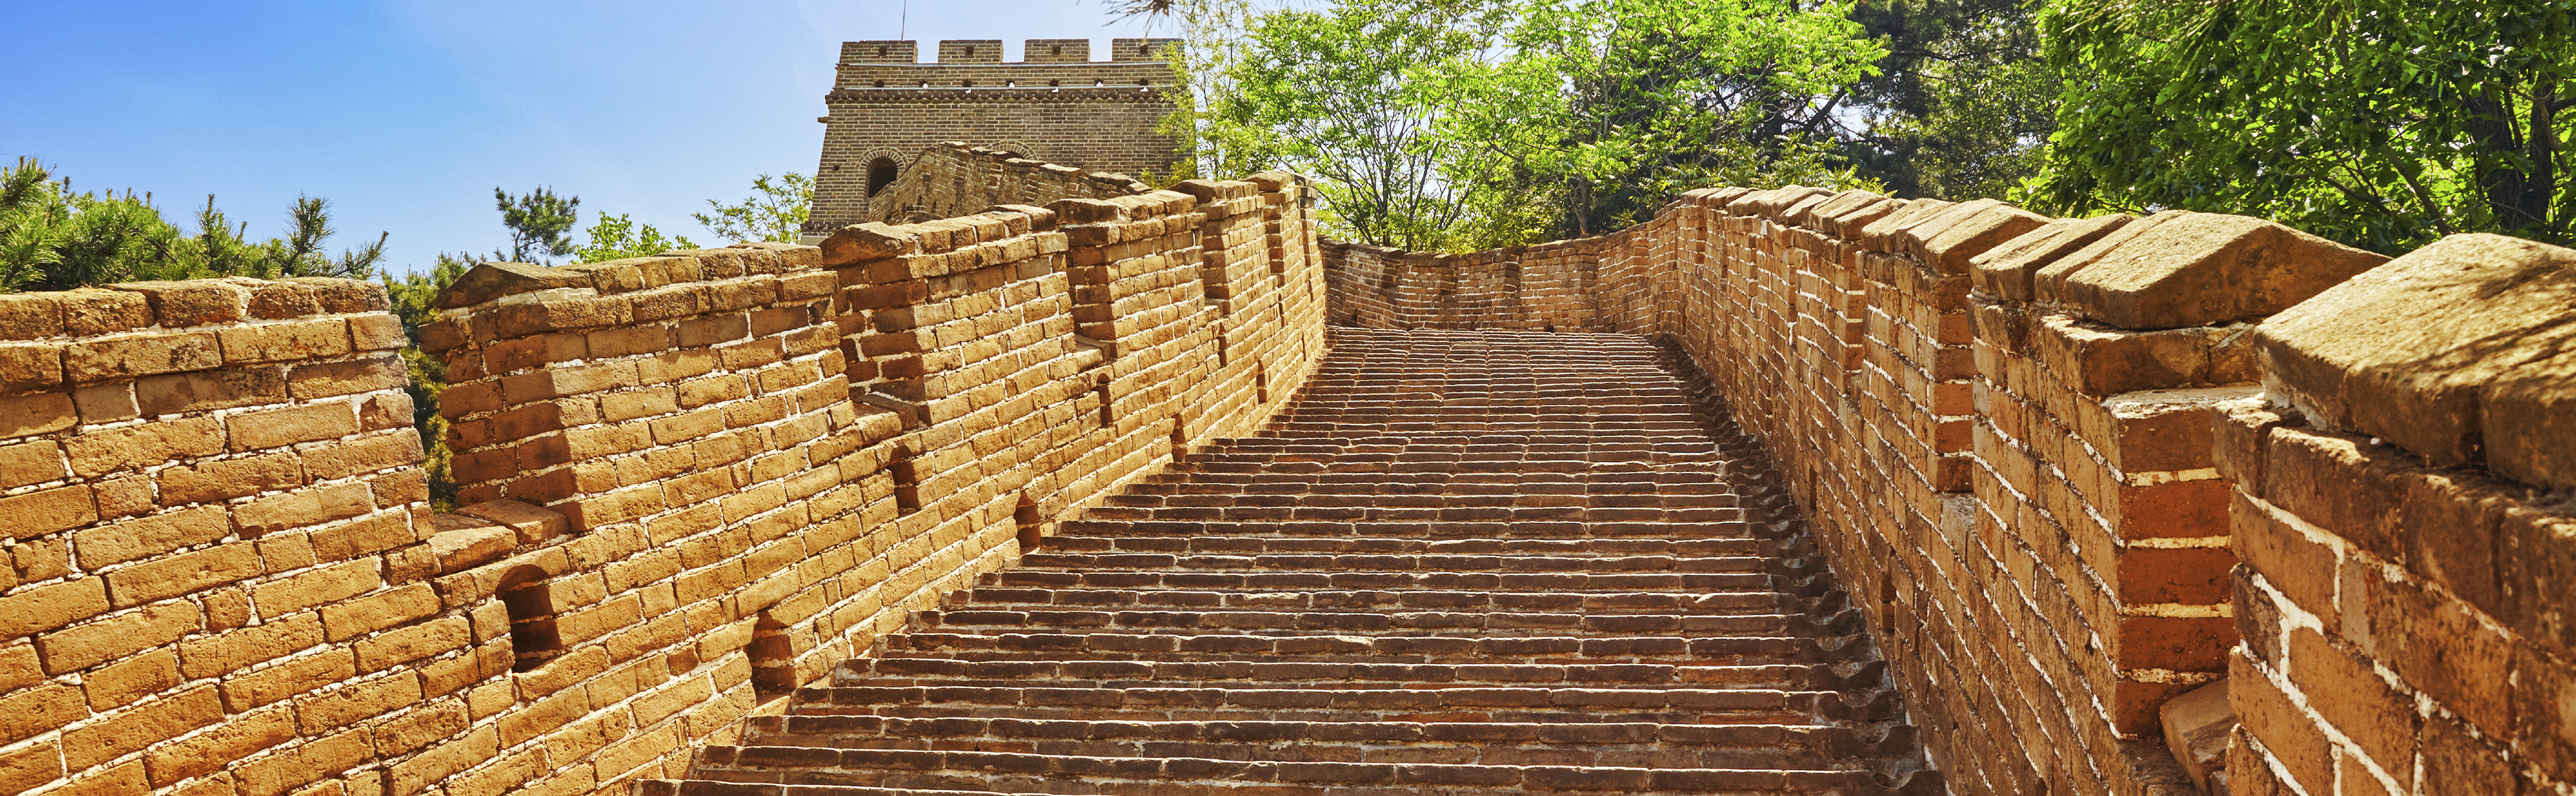 "Stone staircase of Great Wall of China, section ""Mitianyu""."